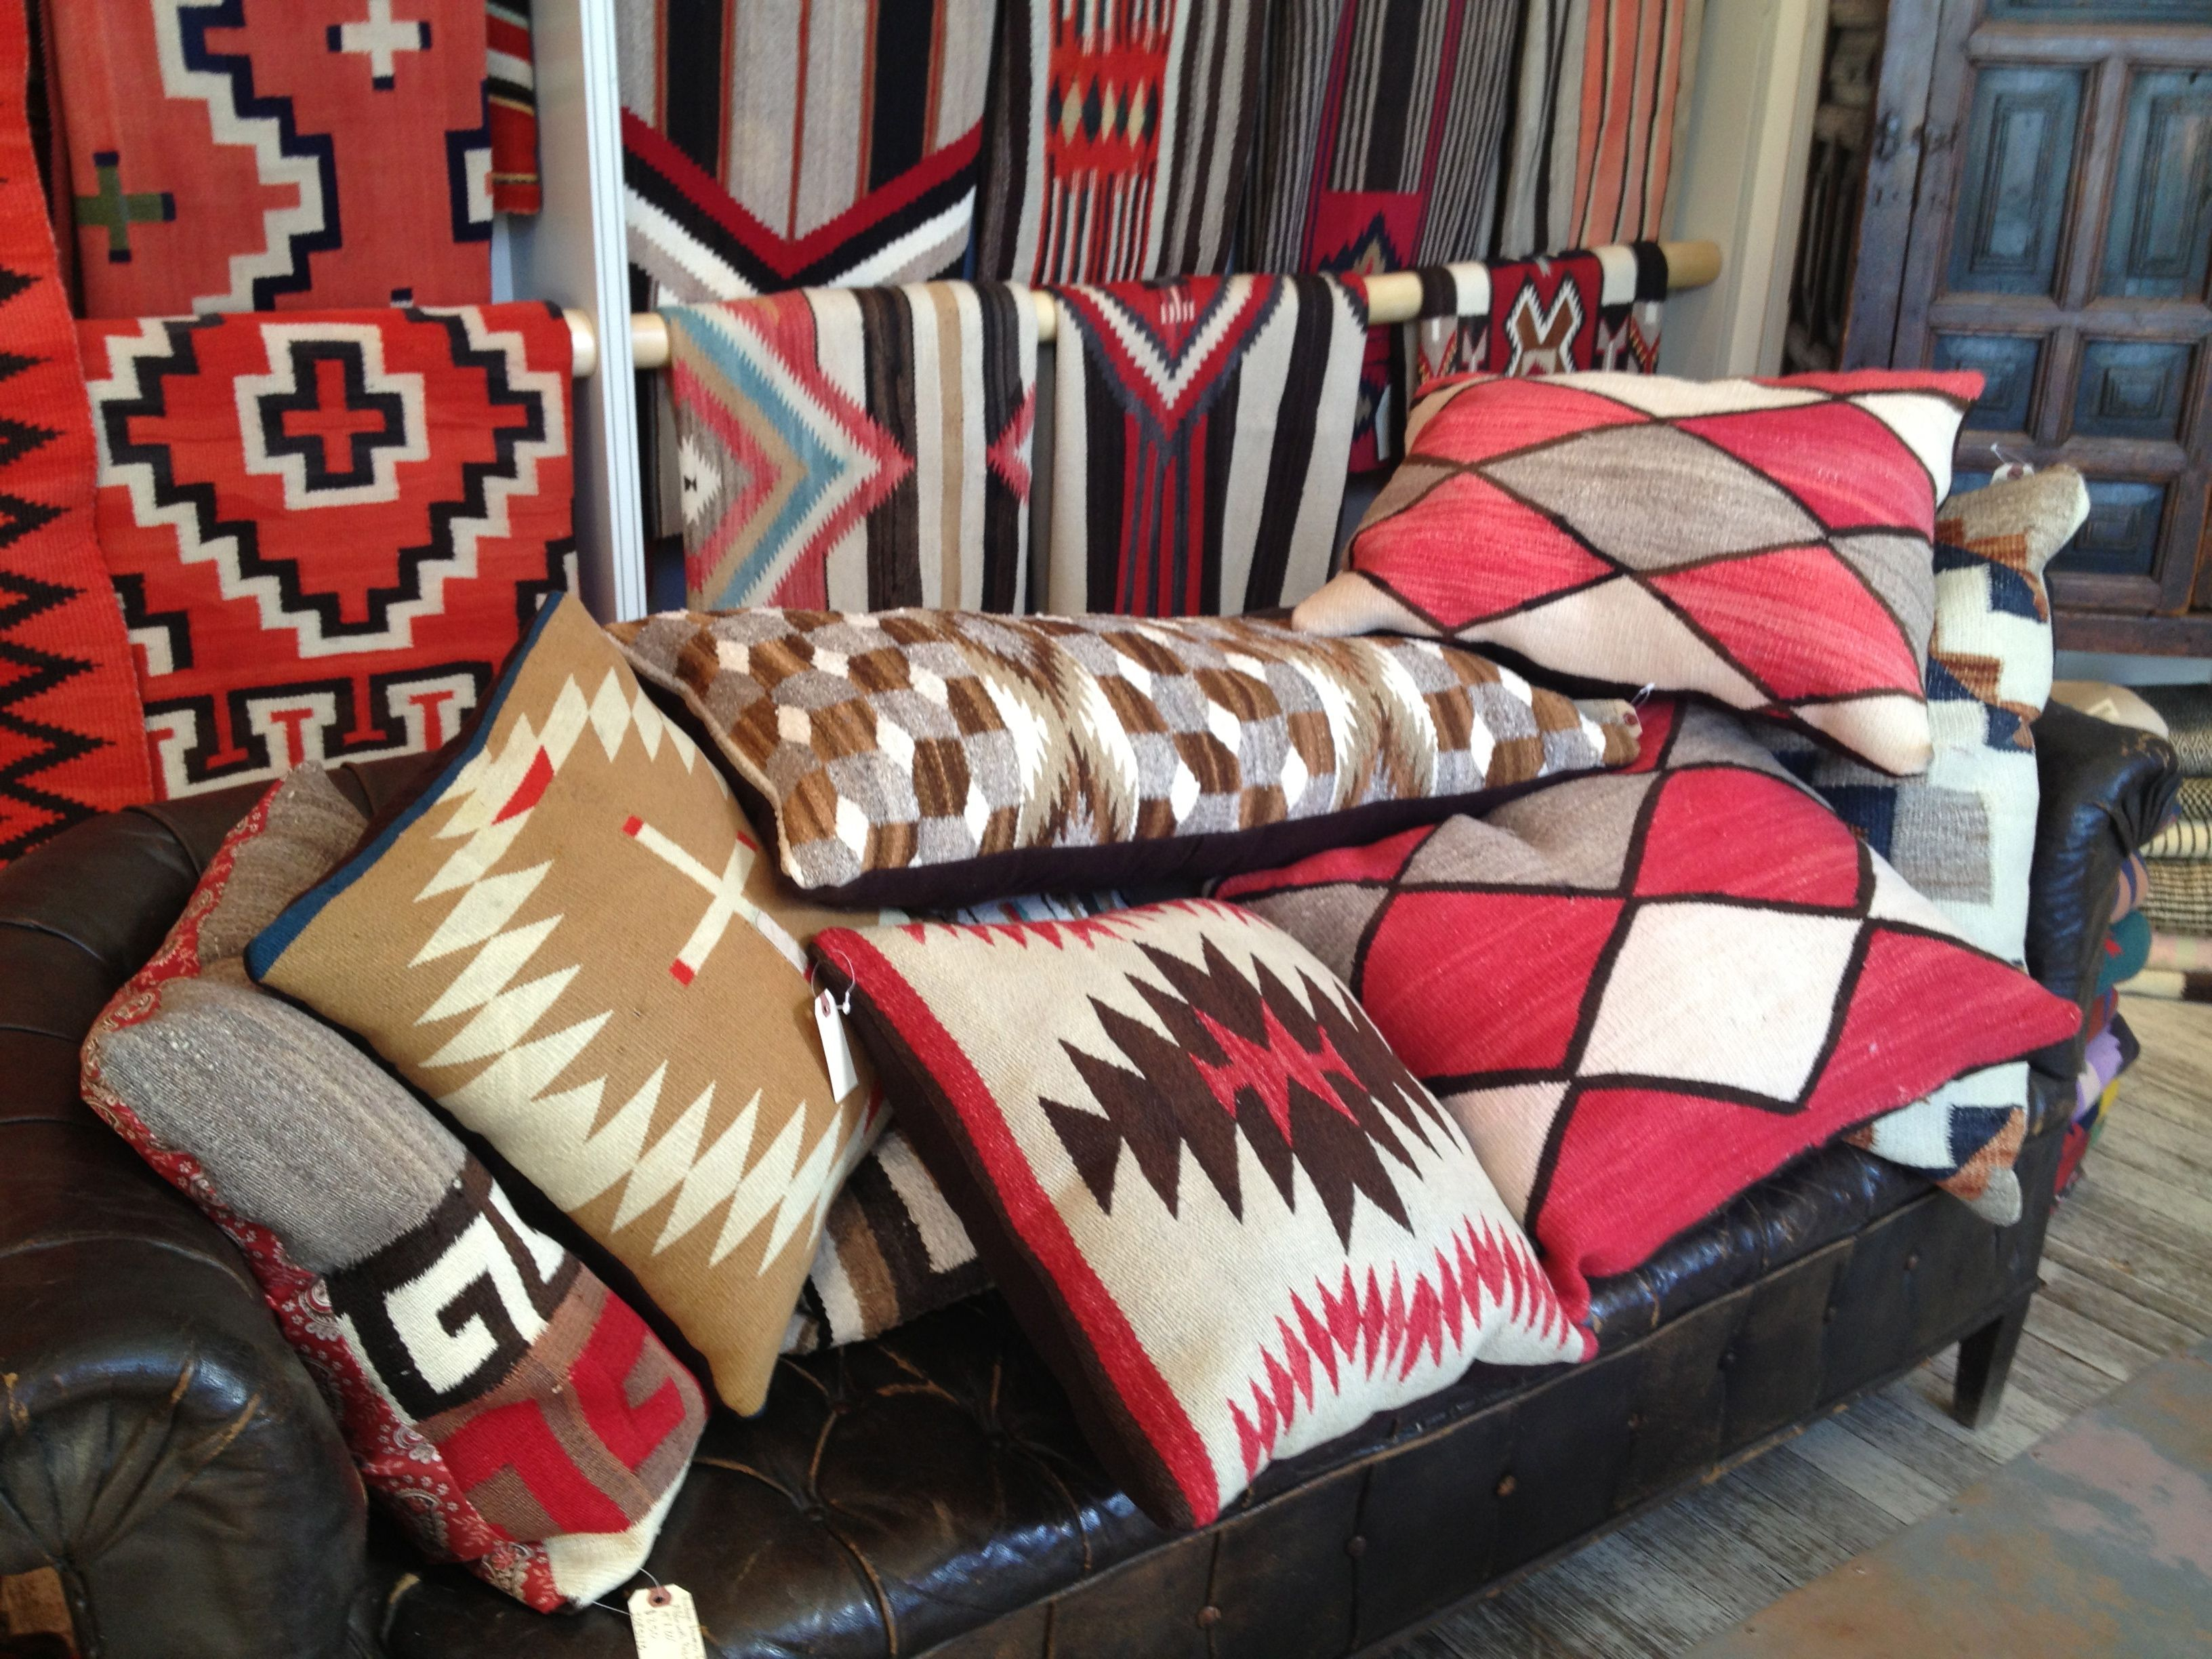 Rugs, Saddle Blankets, And Pillows All Collected On A Vintage Leather Couch  At Shiprock